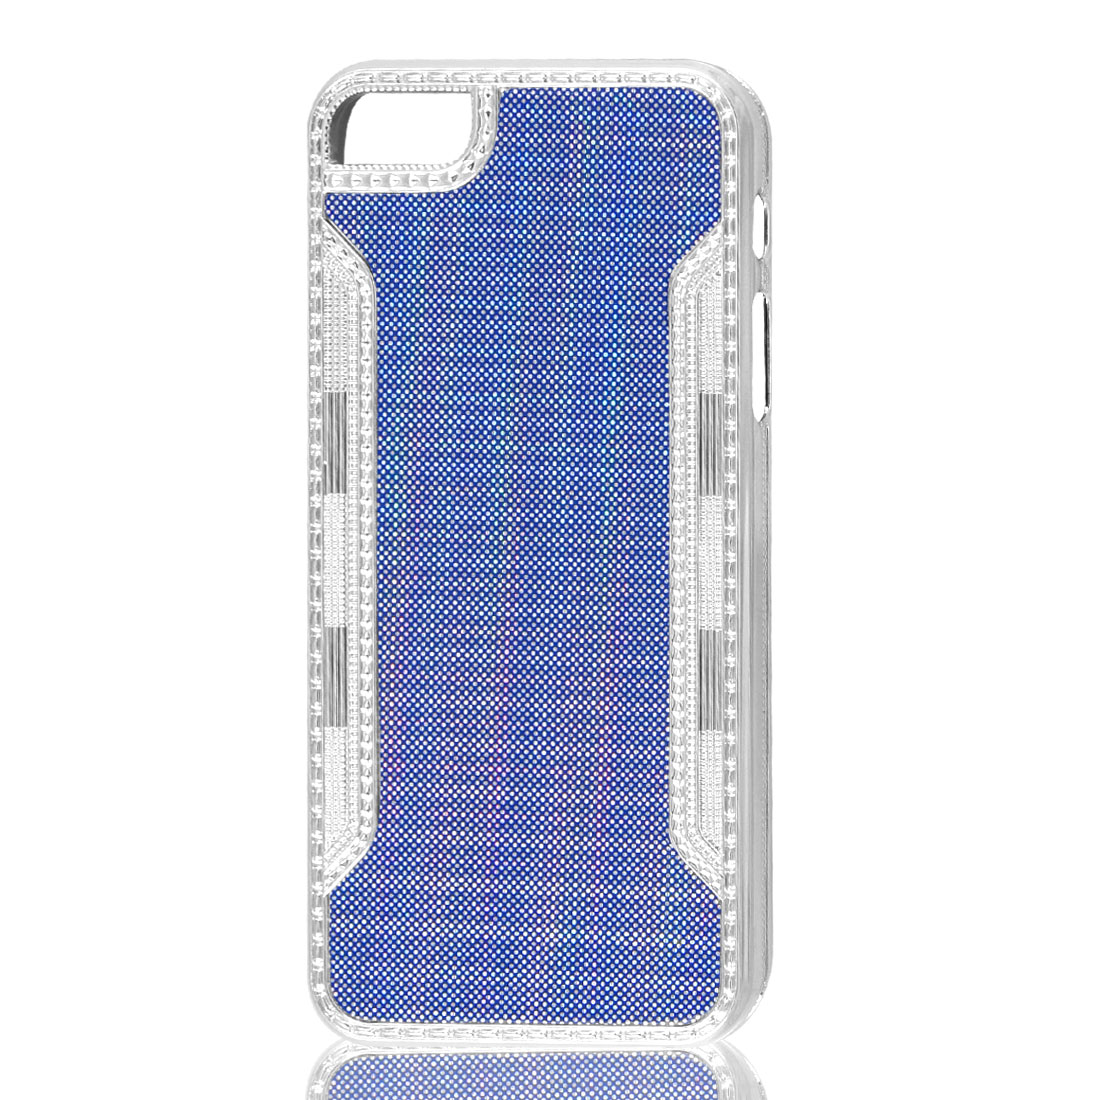 Glitter Bling Blue Hard Back Case Cover for iPhone 5 5G 5th Gen